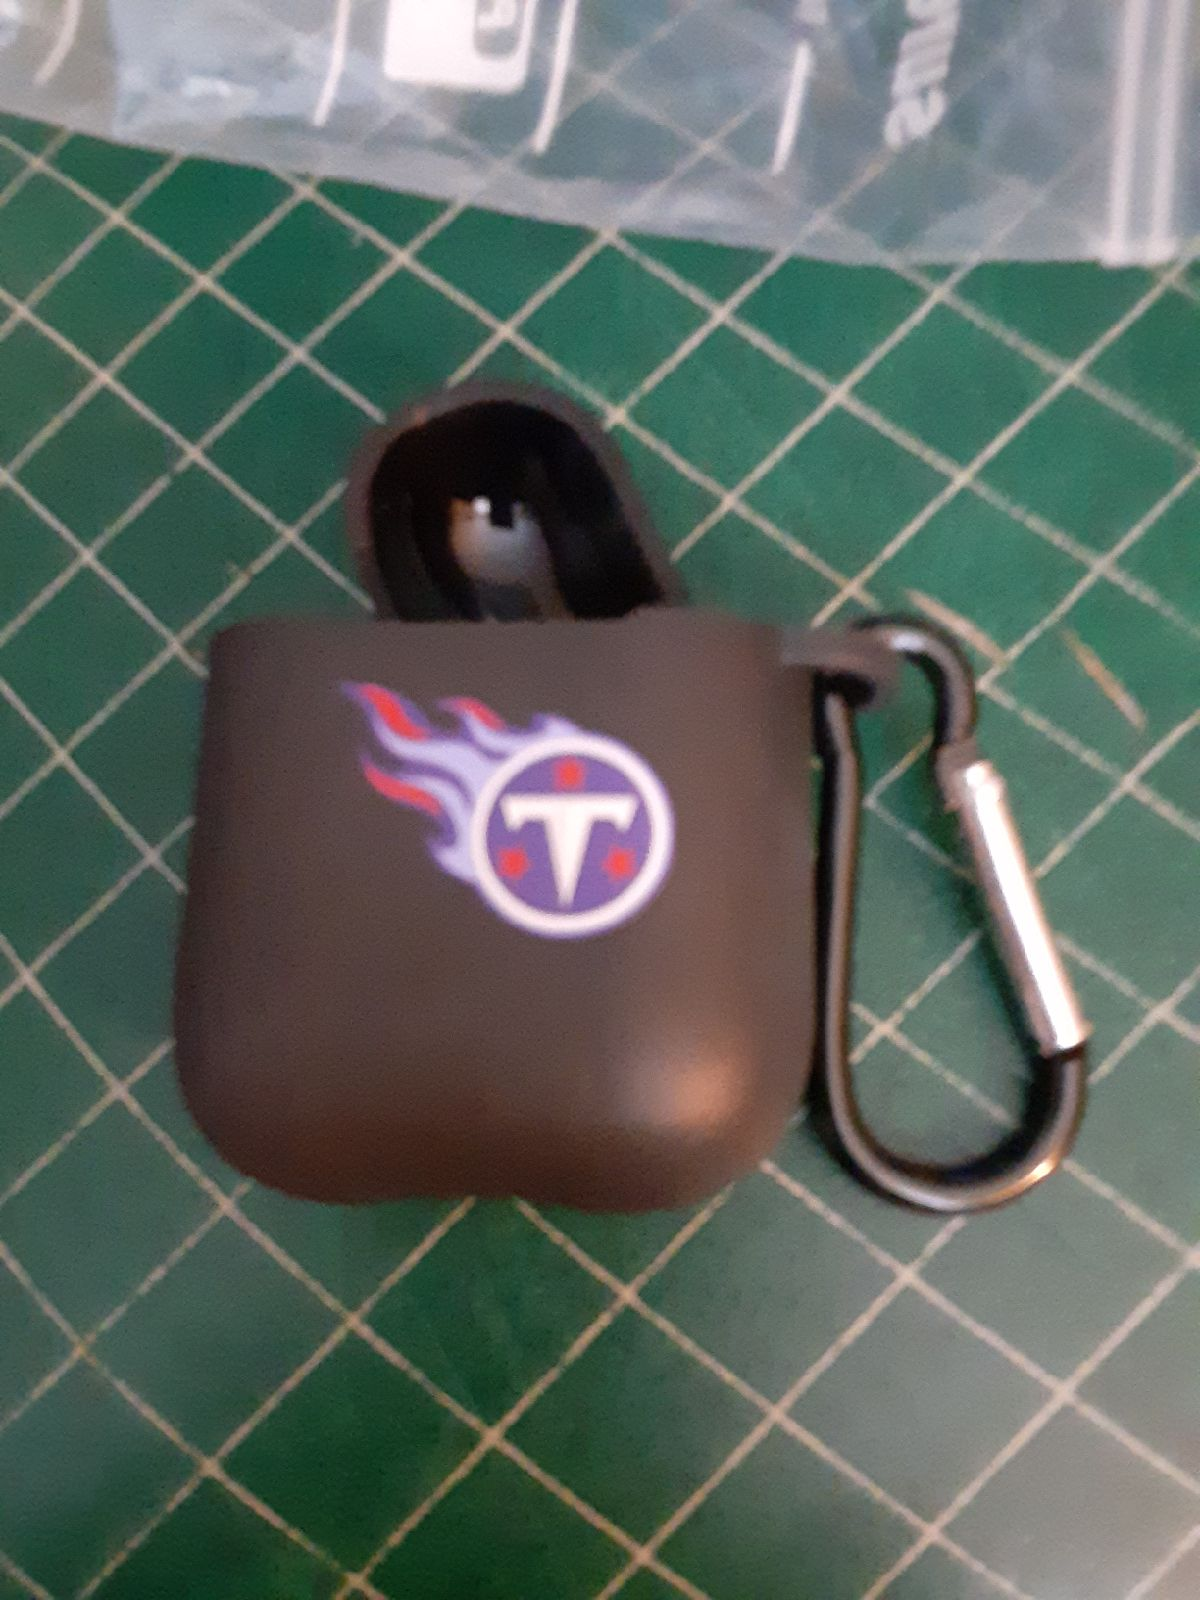 TENNESSEE TiTANS airpod case